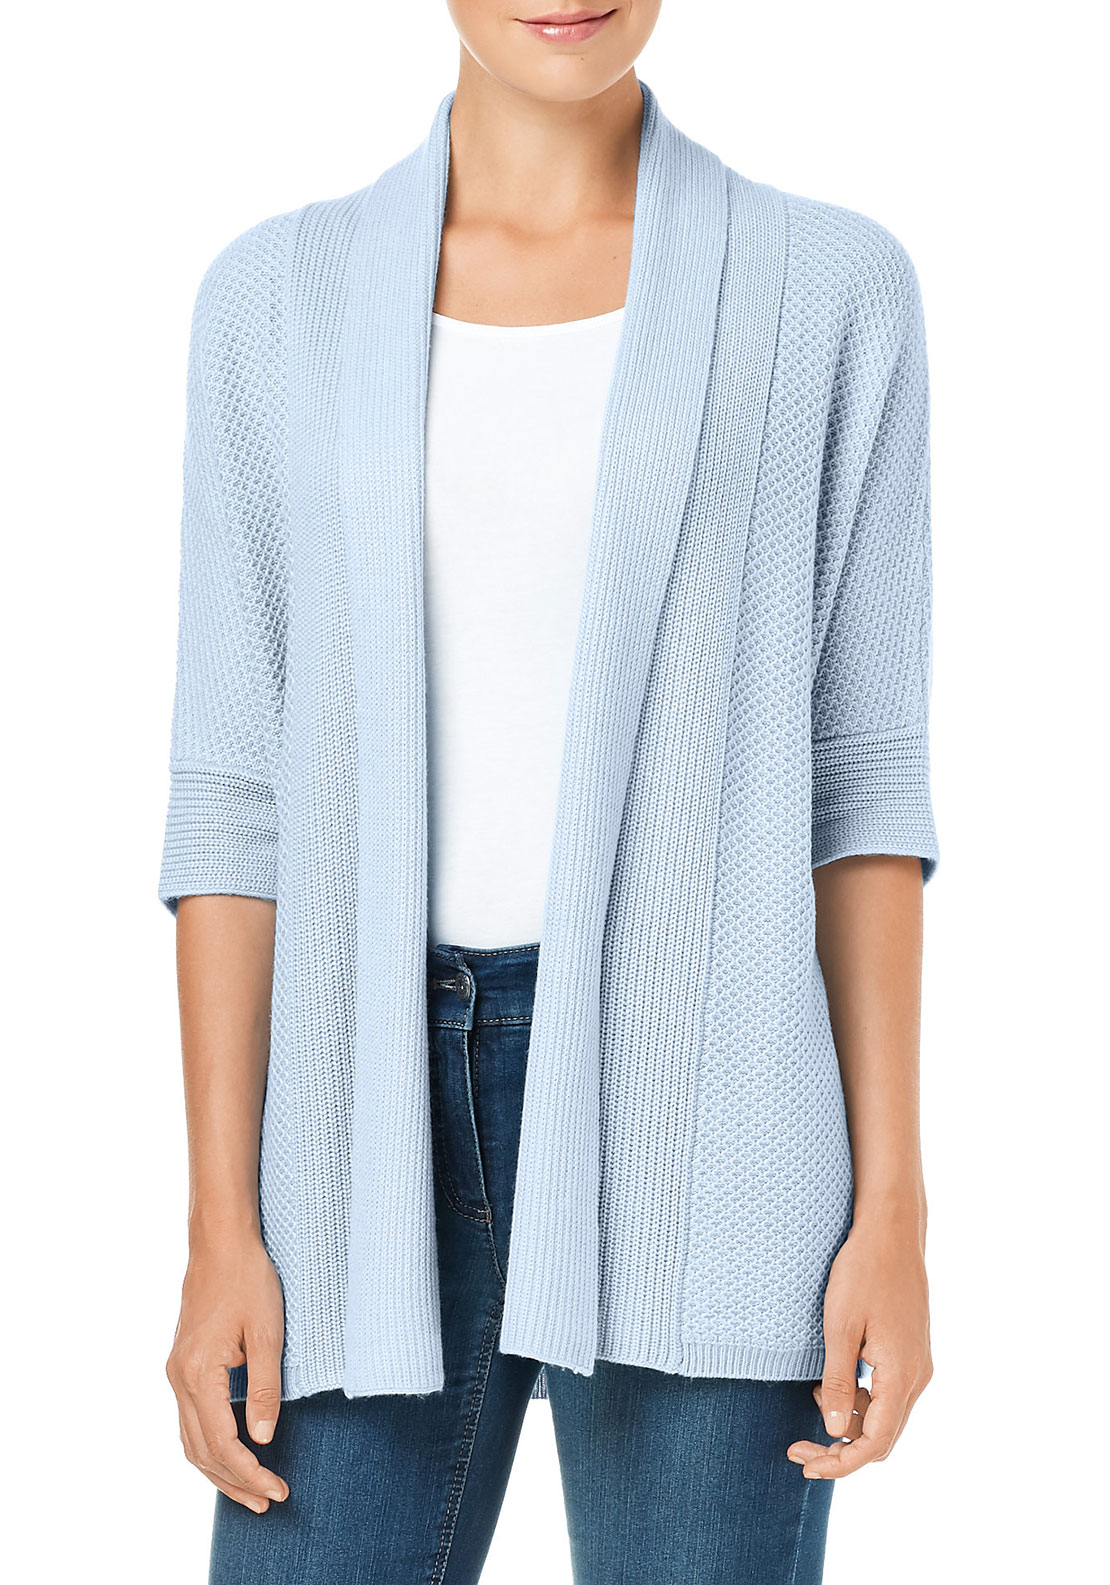 Gerry Weber Loose Fit Cardigan, Pale Blue